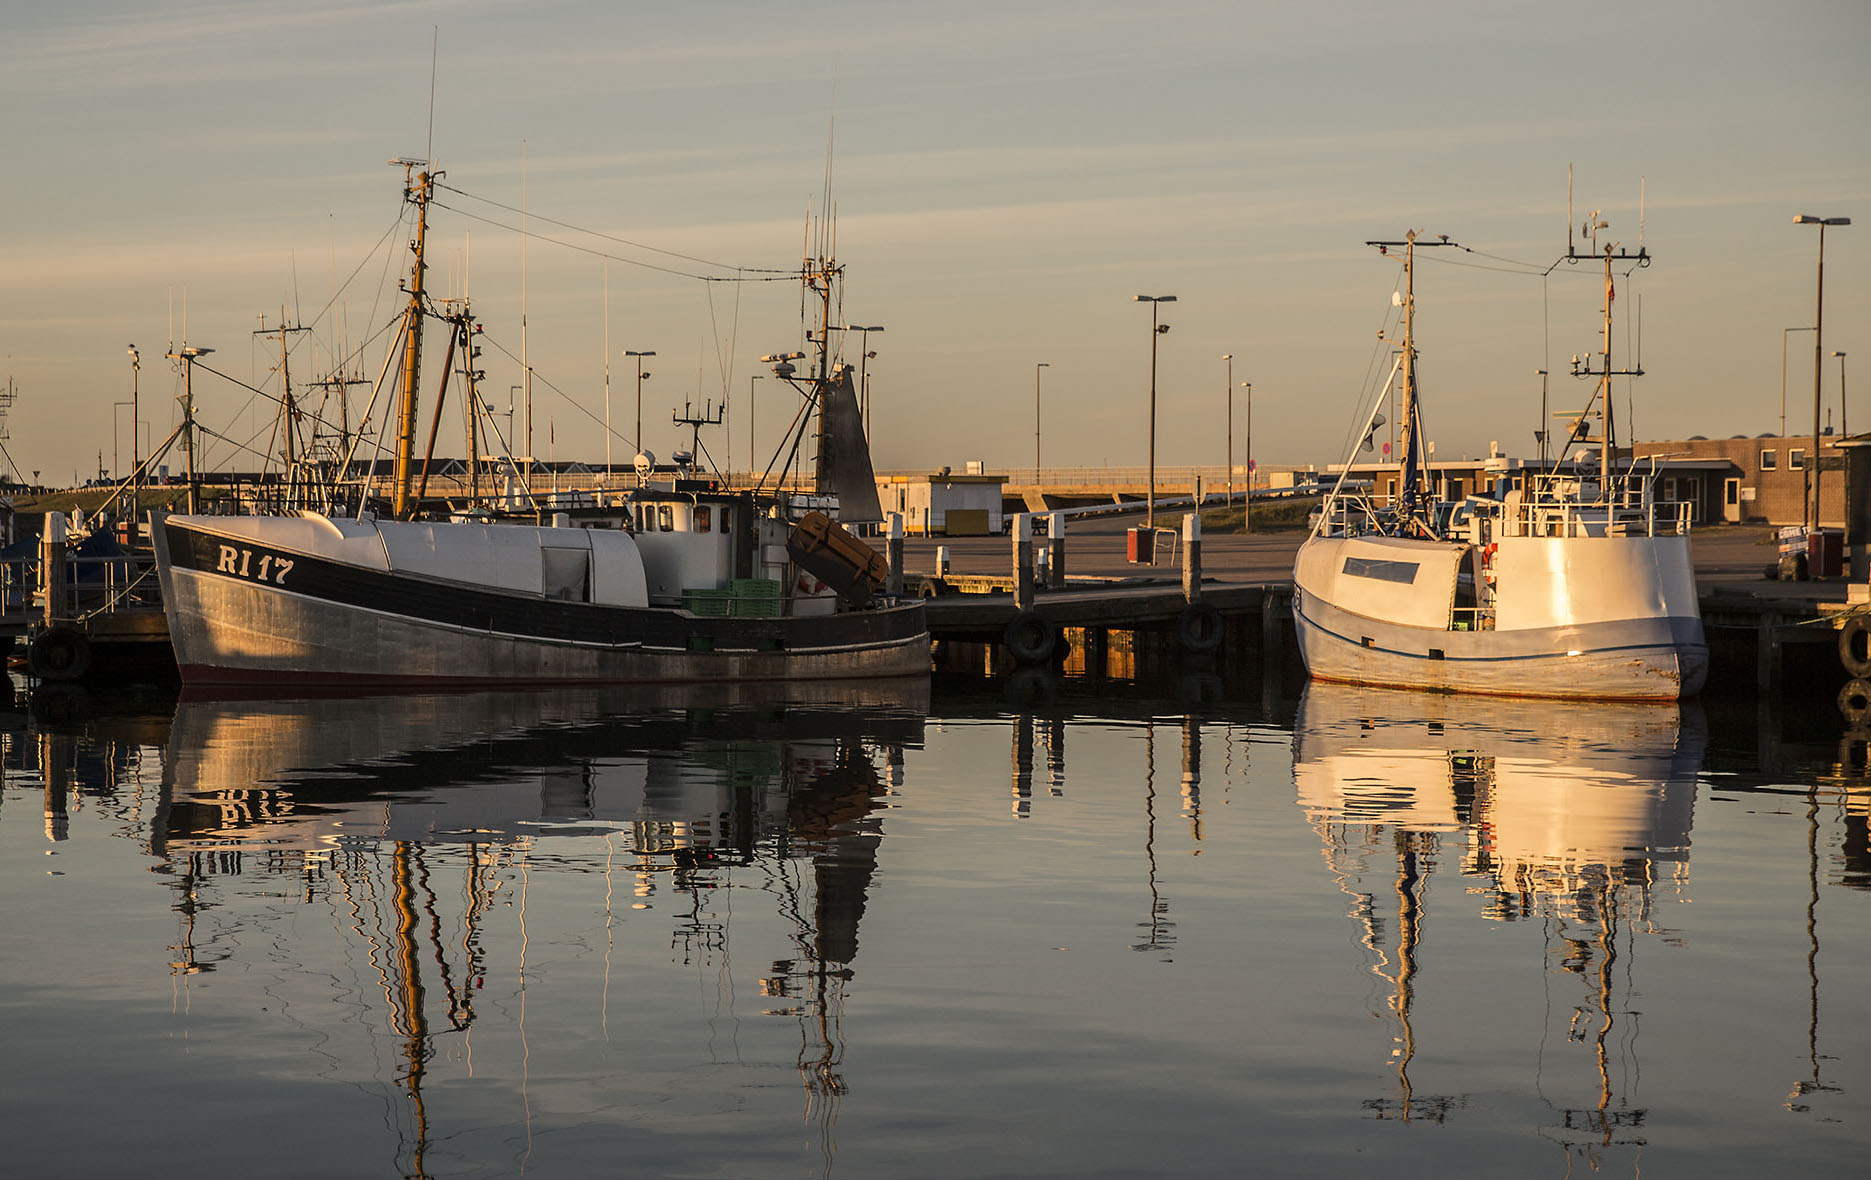 HS16_ls_fISHING_hARBOUR-WEB.jpg